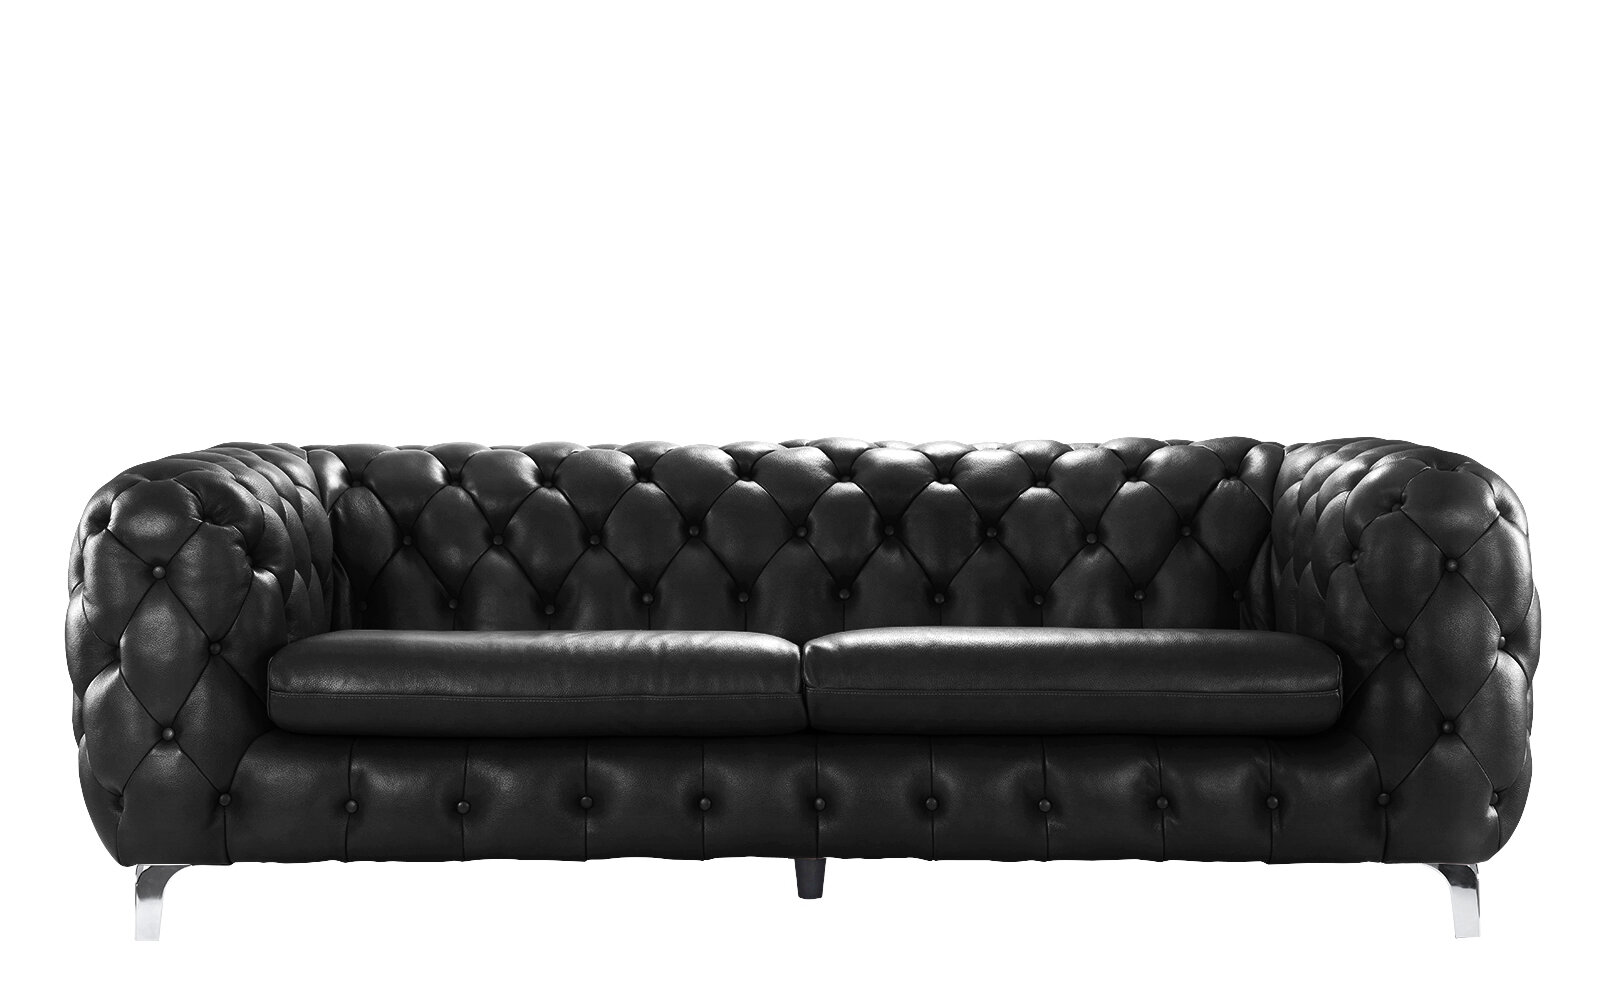 17 Stories Yuliya Leather Chesterfield Sofa With Built In Shelves Wayfair